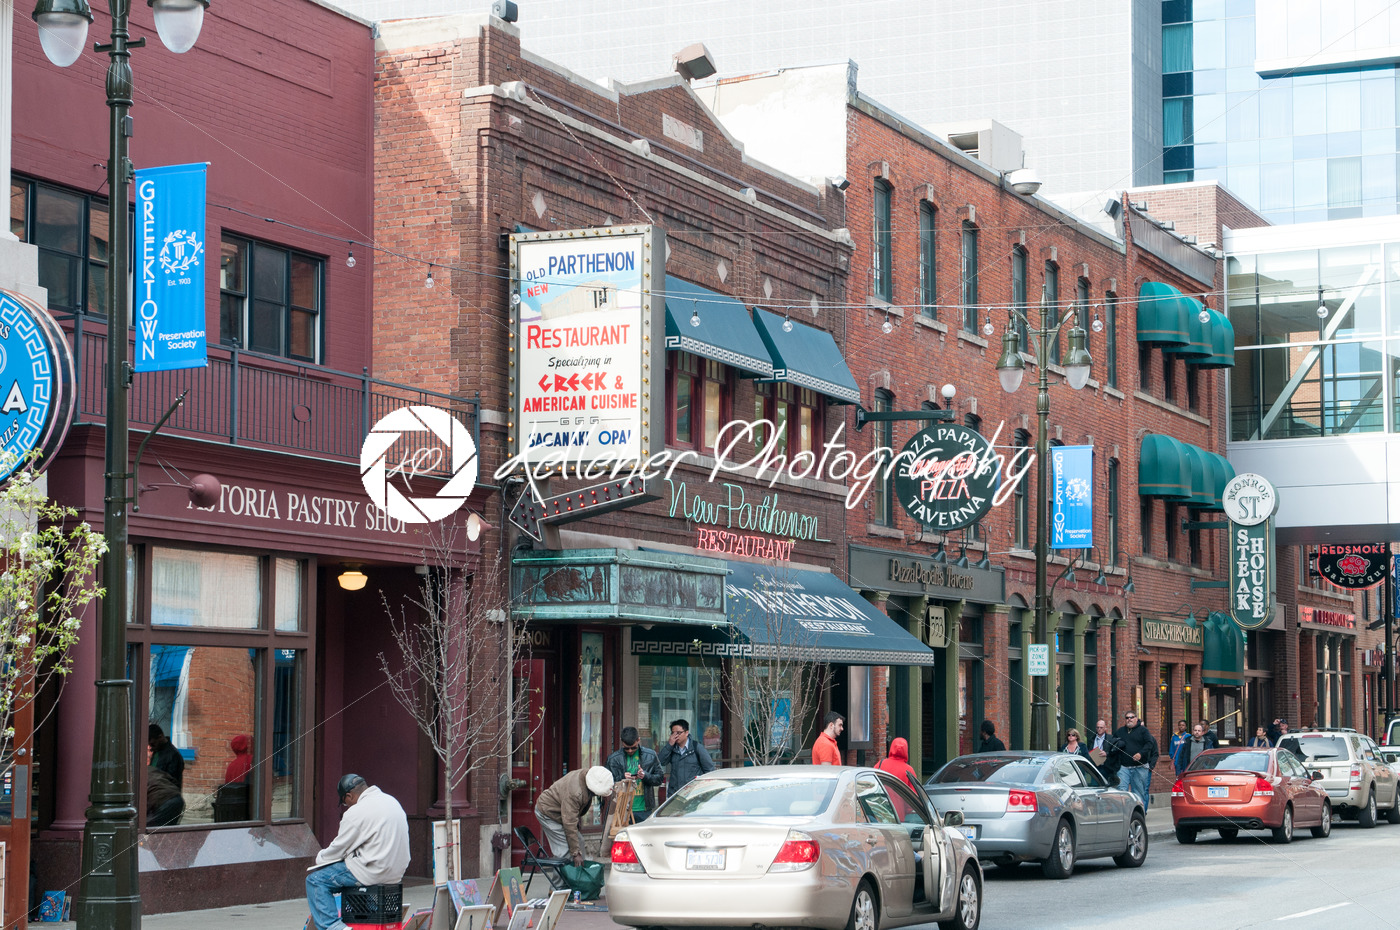 DETROIT, MI – MAY 6: Greektown section of downtown Detroit on May 6, 2014 - Kelleher Photography Store